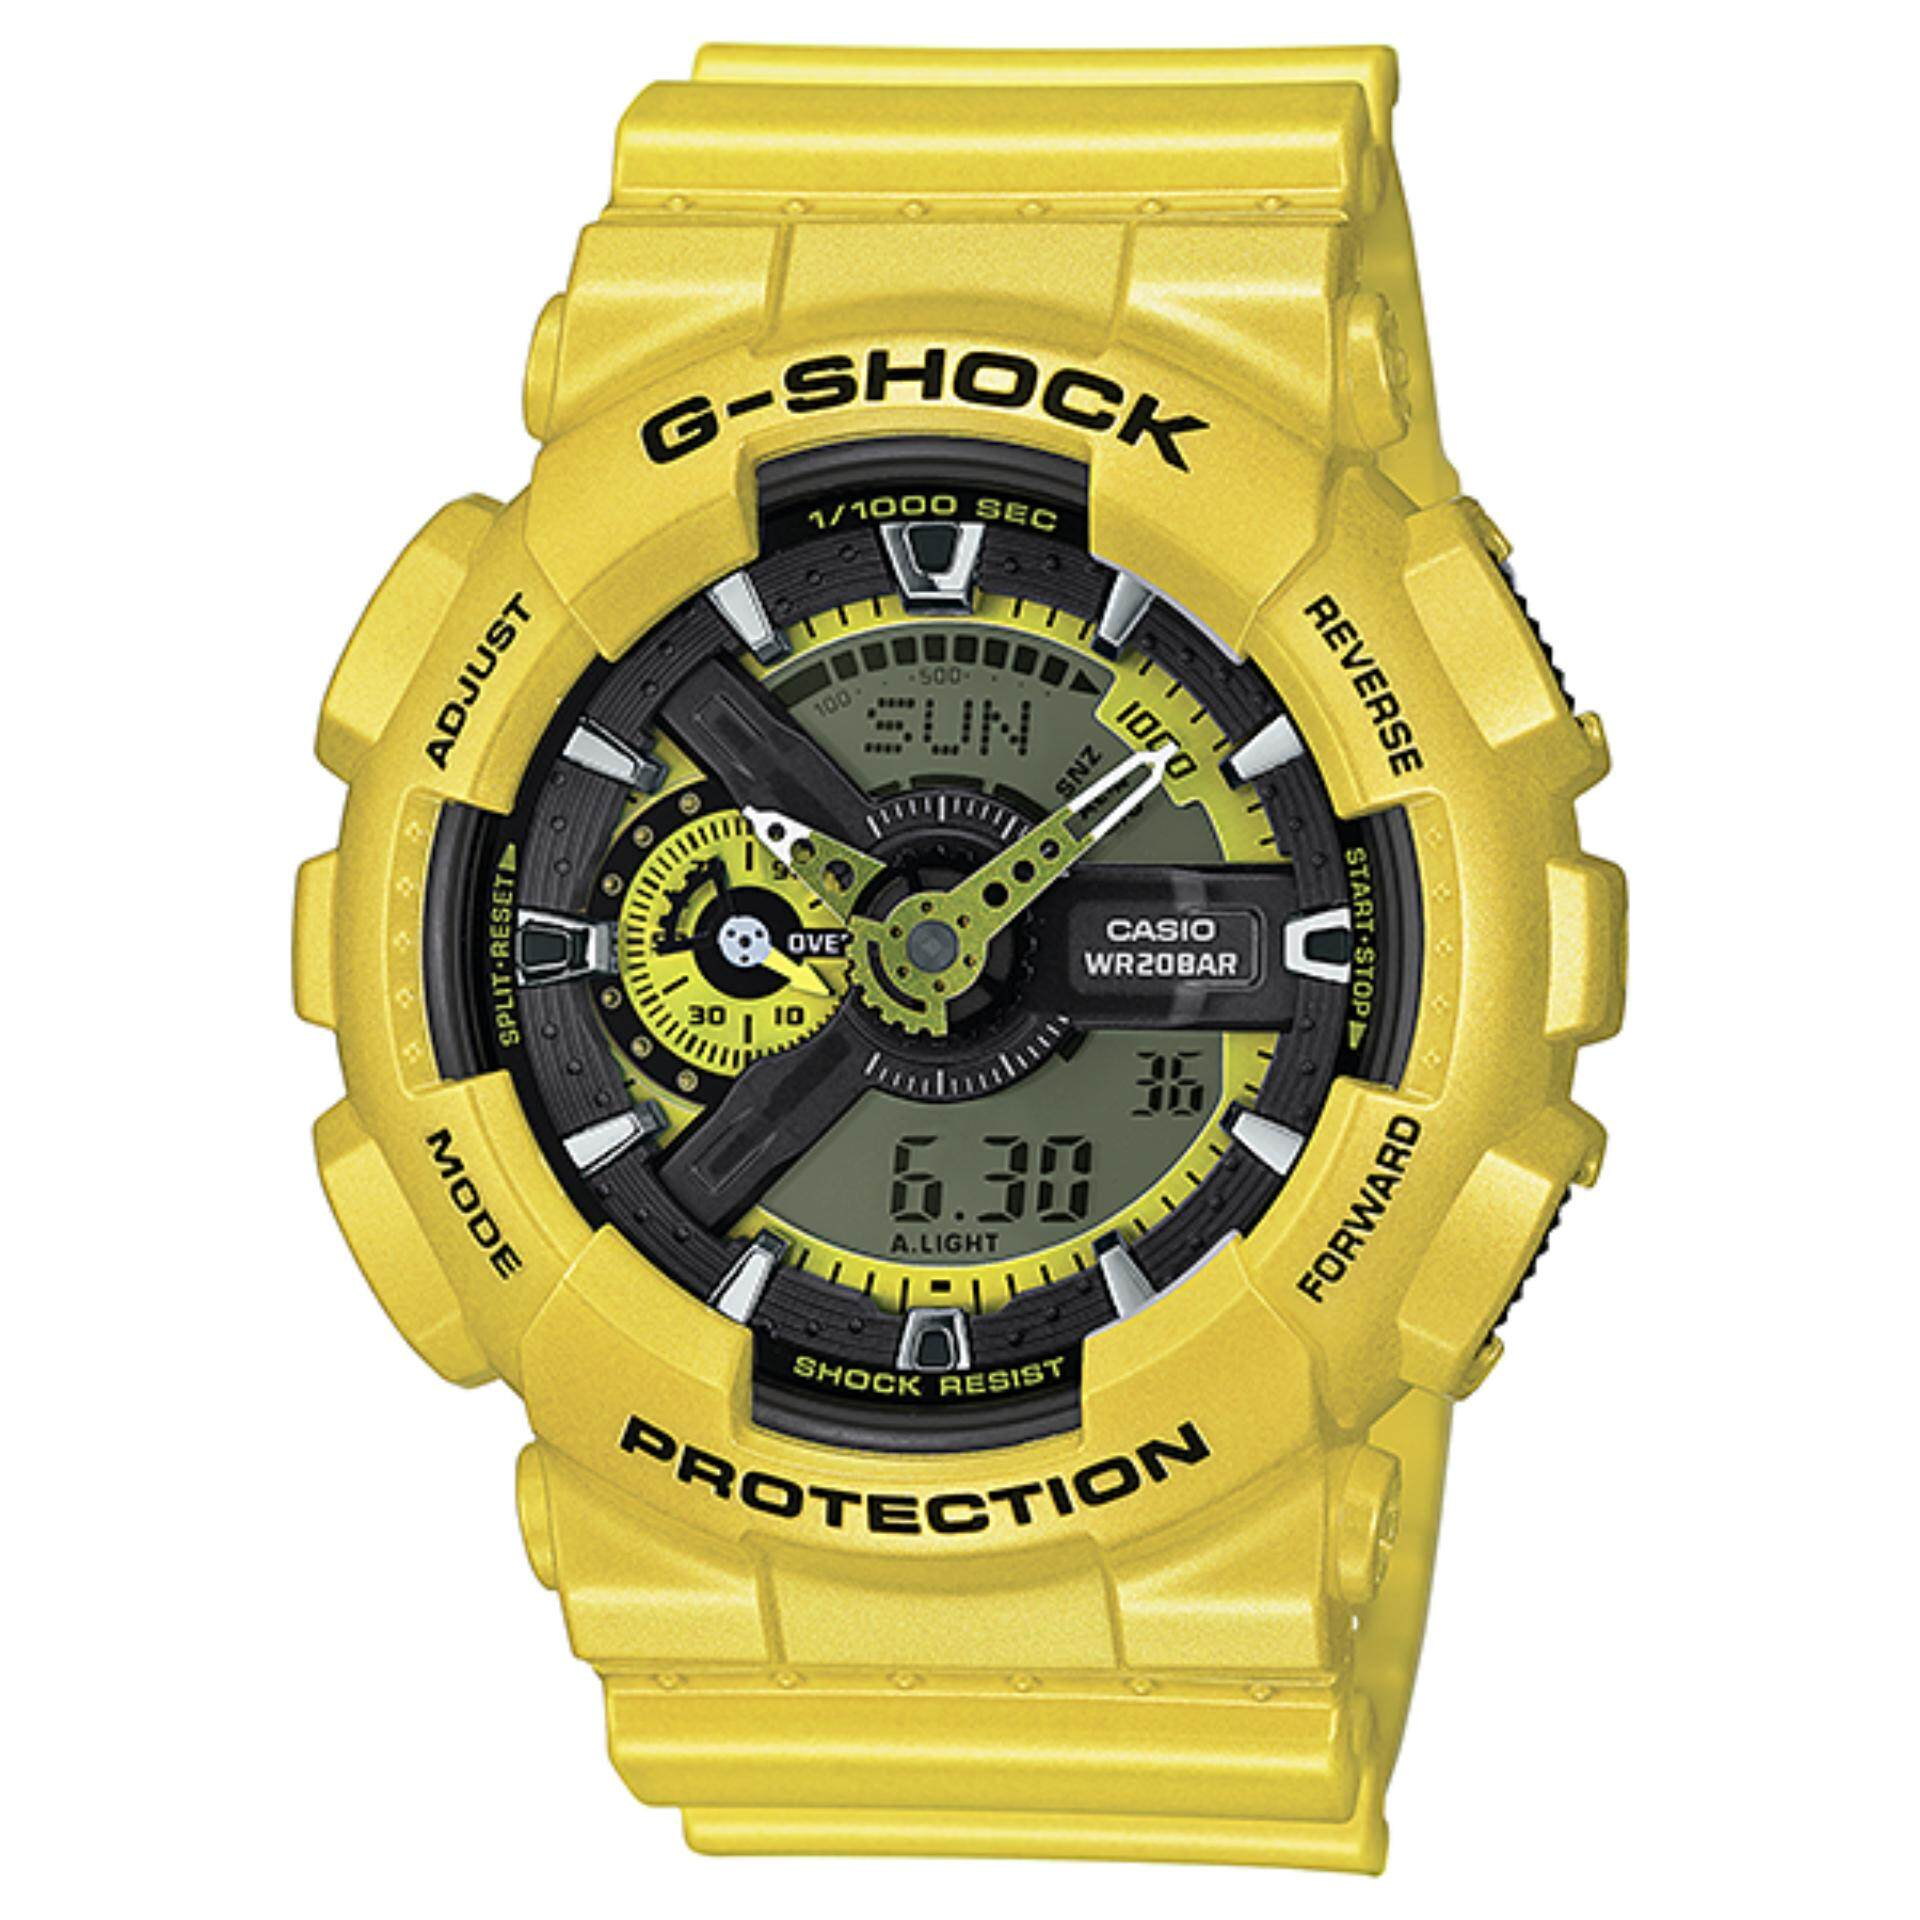 Casio G Shock Watches With Best Price At Lazada Malaysia Jam Tangan Original Pria 7900a 4dr Mens Yellow Resin Strap Watch Ga 110nm 9a Sales Item